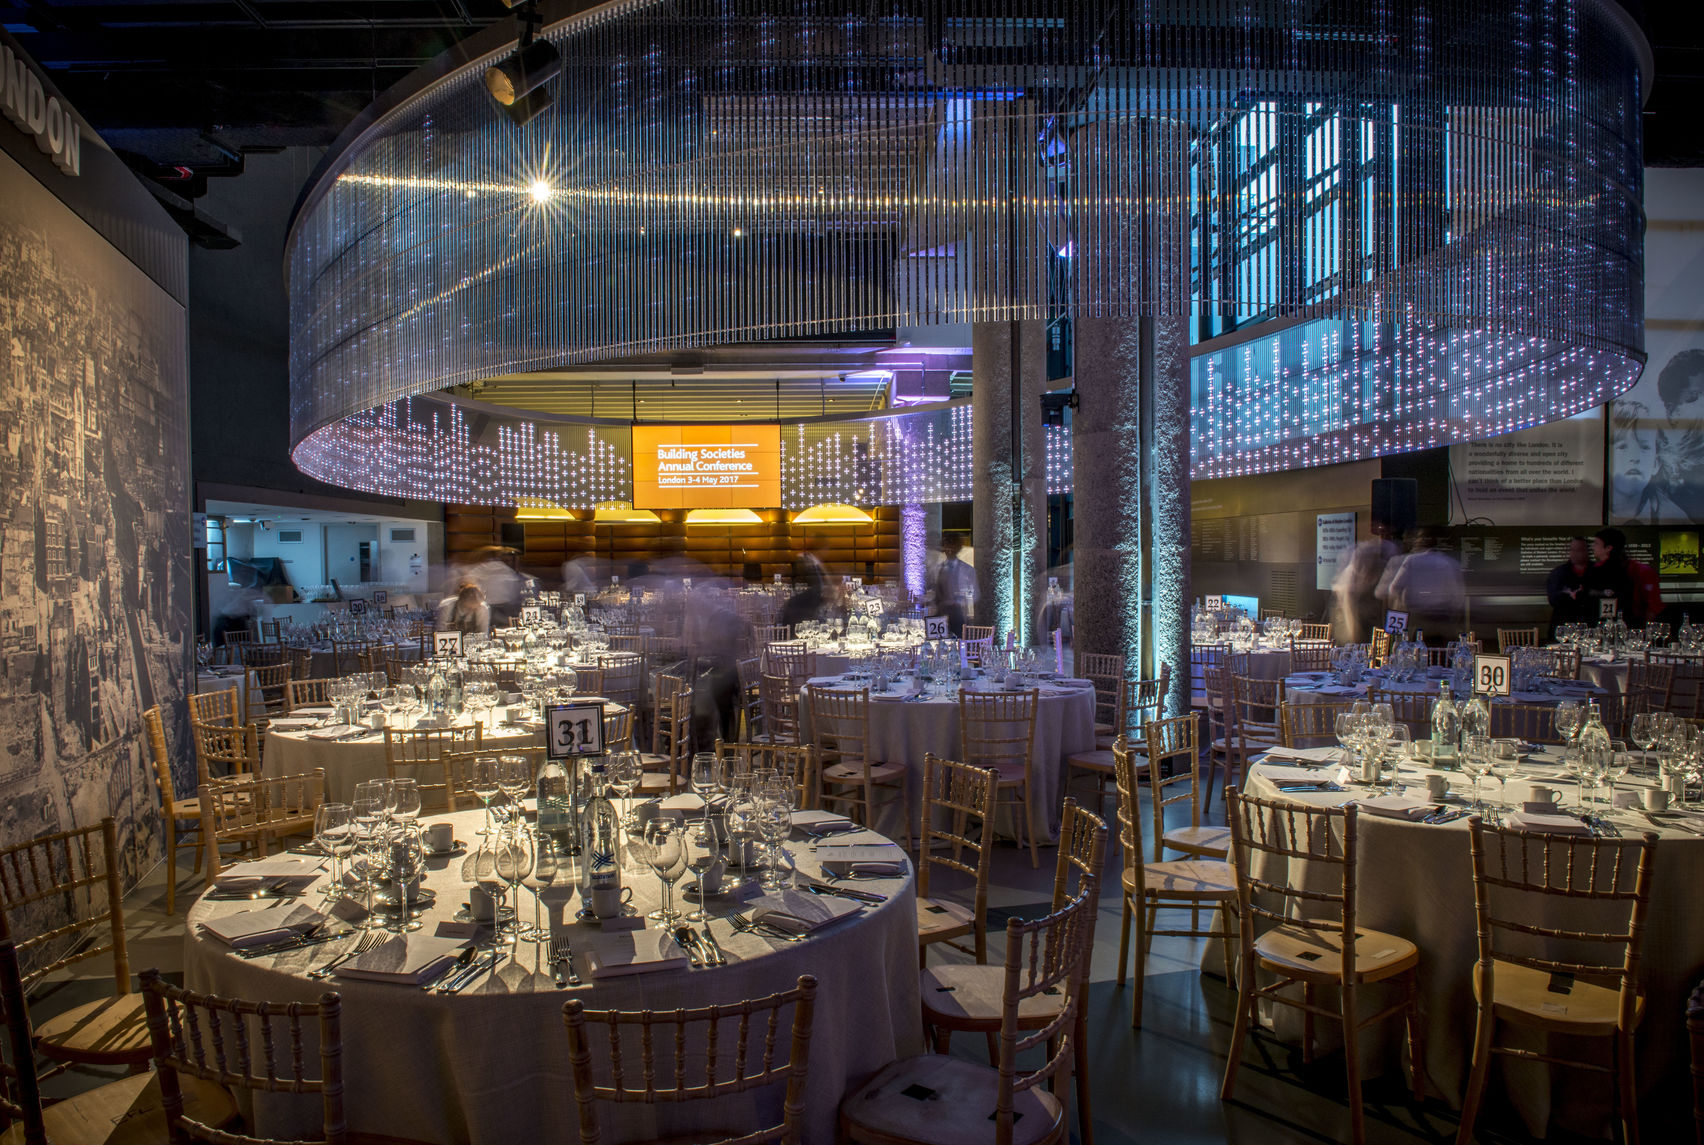 sacklers hall at the museum of london is set up for a cabaret event with large tables and chairs